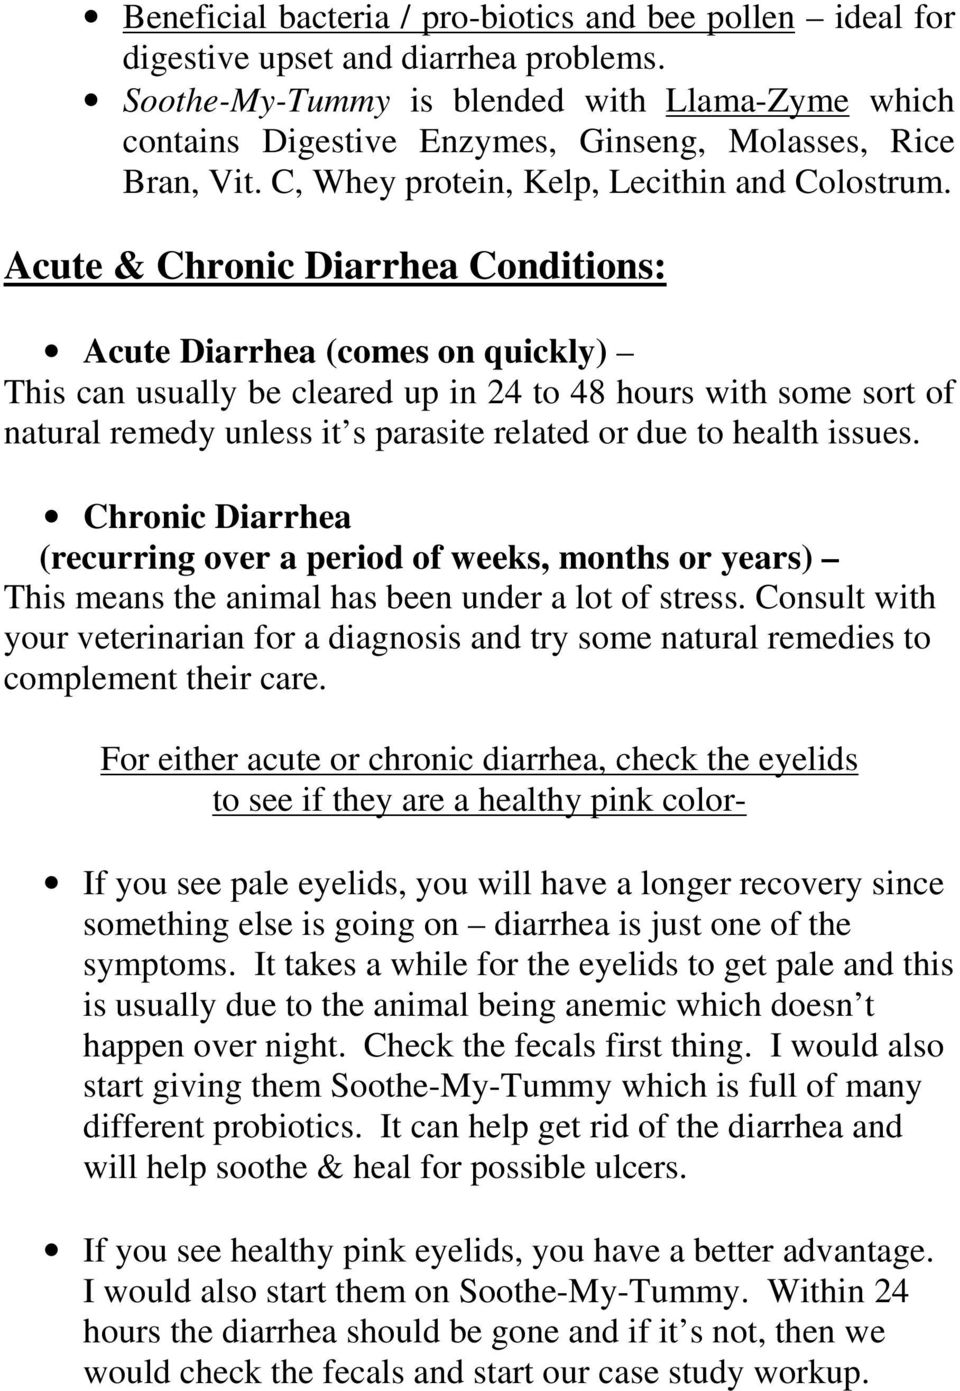 Acute & Chronic Diarrhea Conditions: Acute Diarrhea (comes on quickly) This can usually be cleared up in 24 to 48 hours with some sort of natural remedy unless it s parasite related or due to health